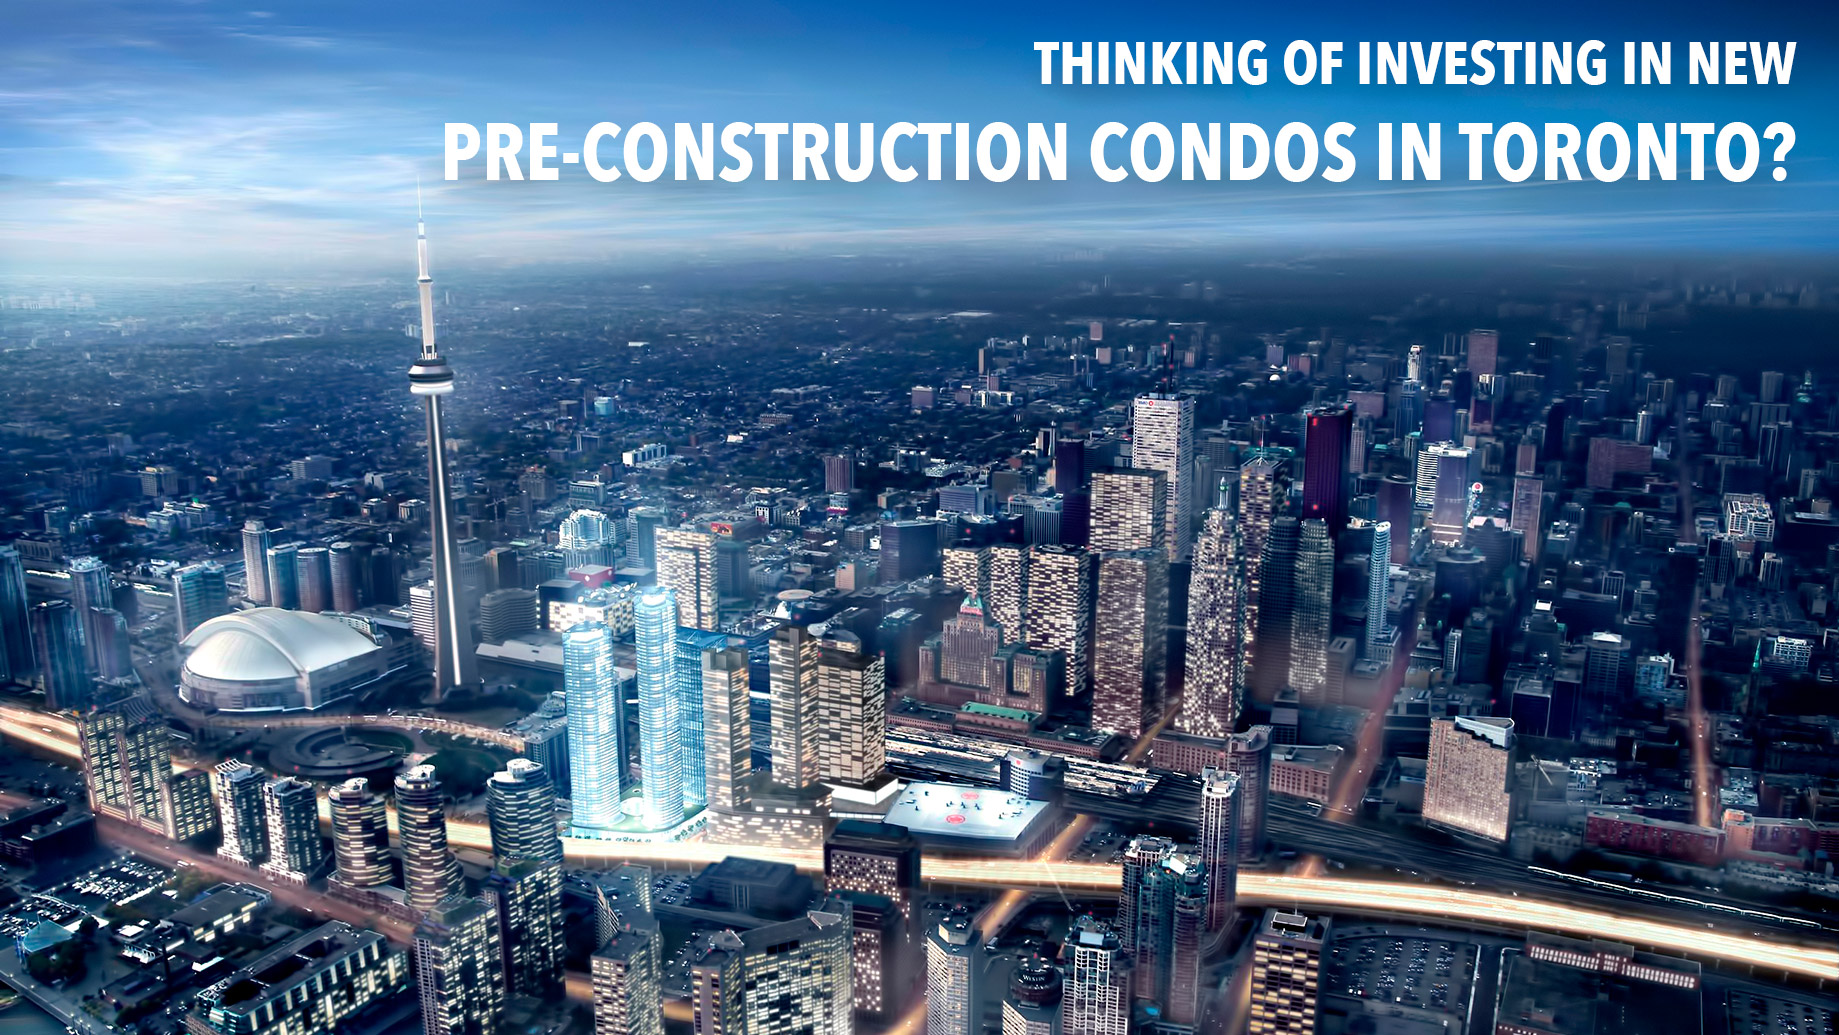 Thinking of Investing in New Pre-Construction Condos in Toronto?